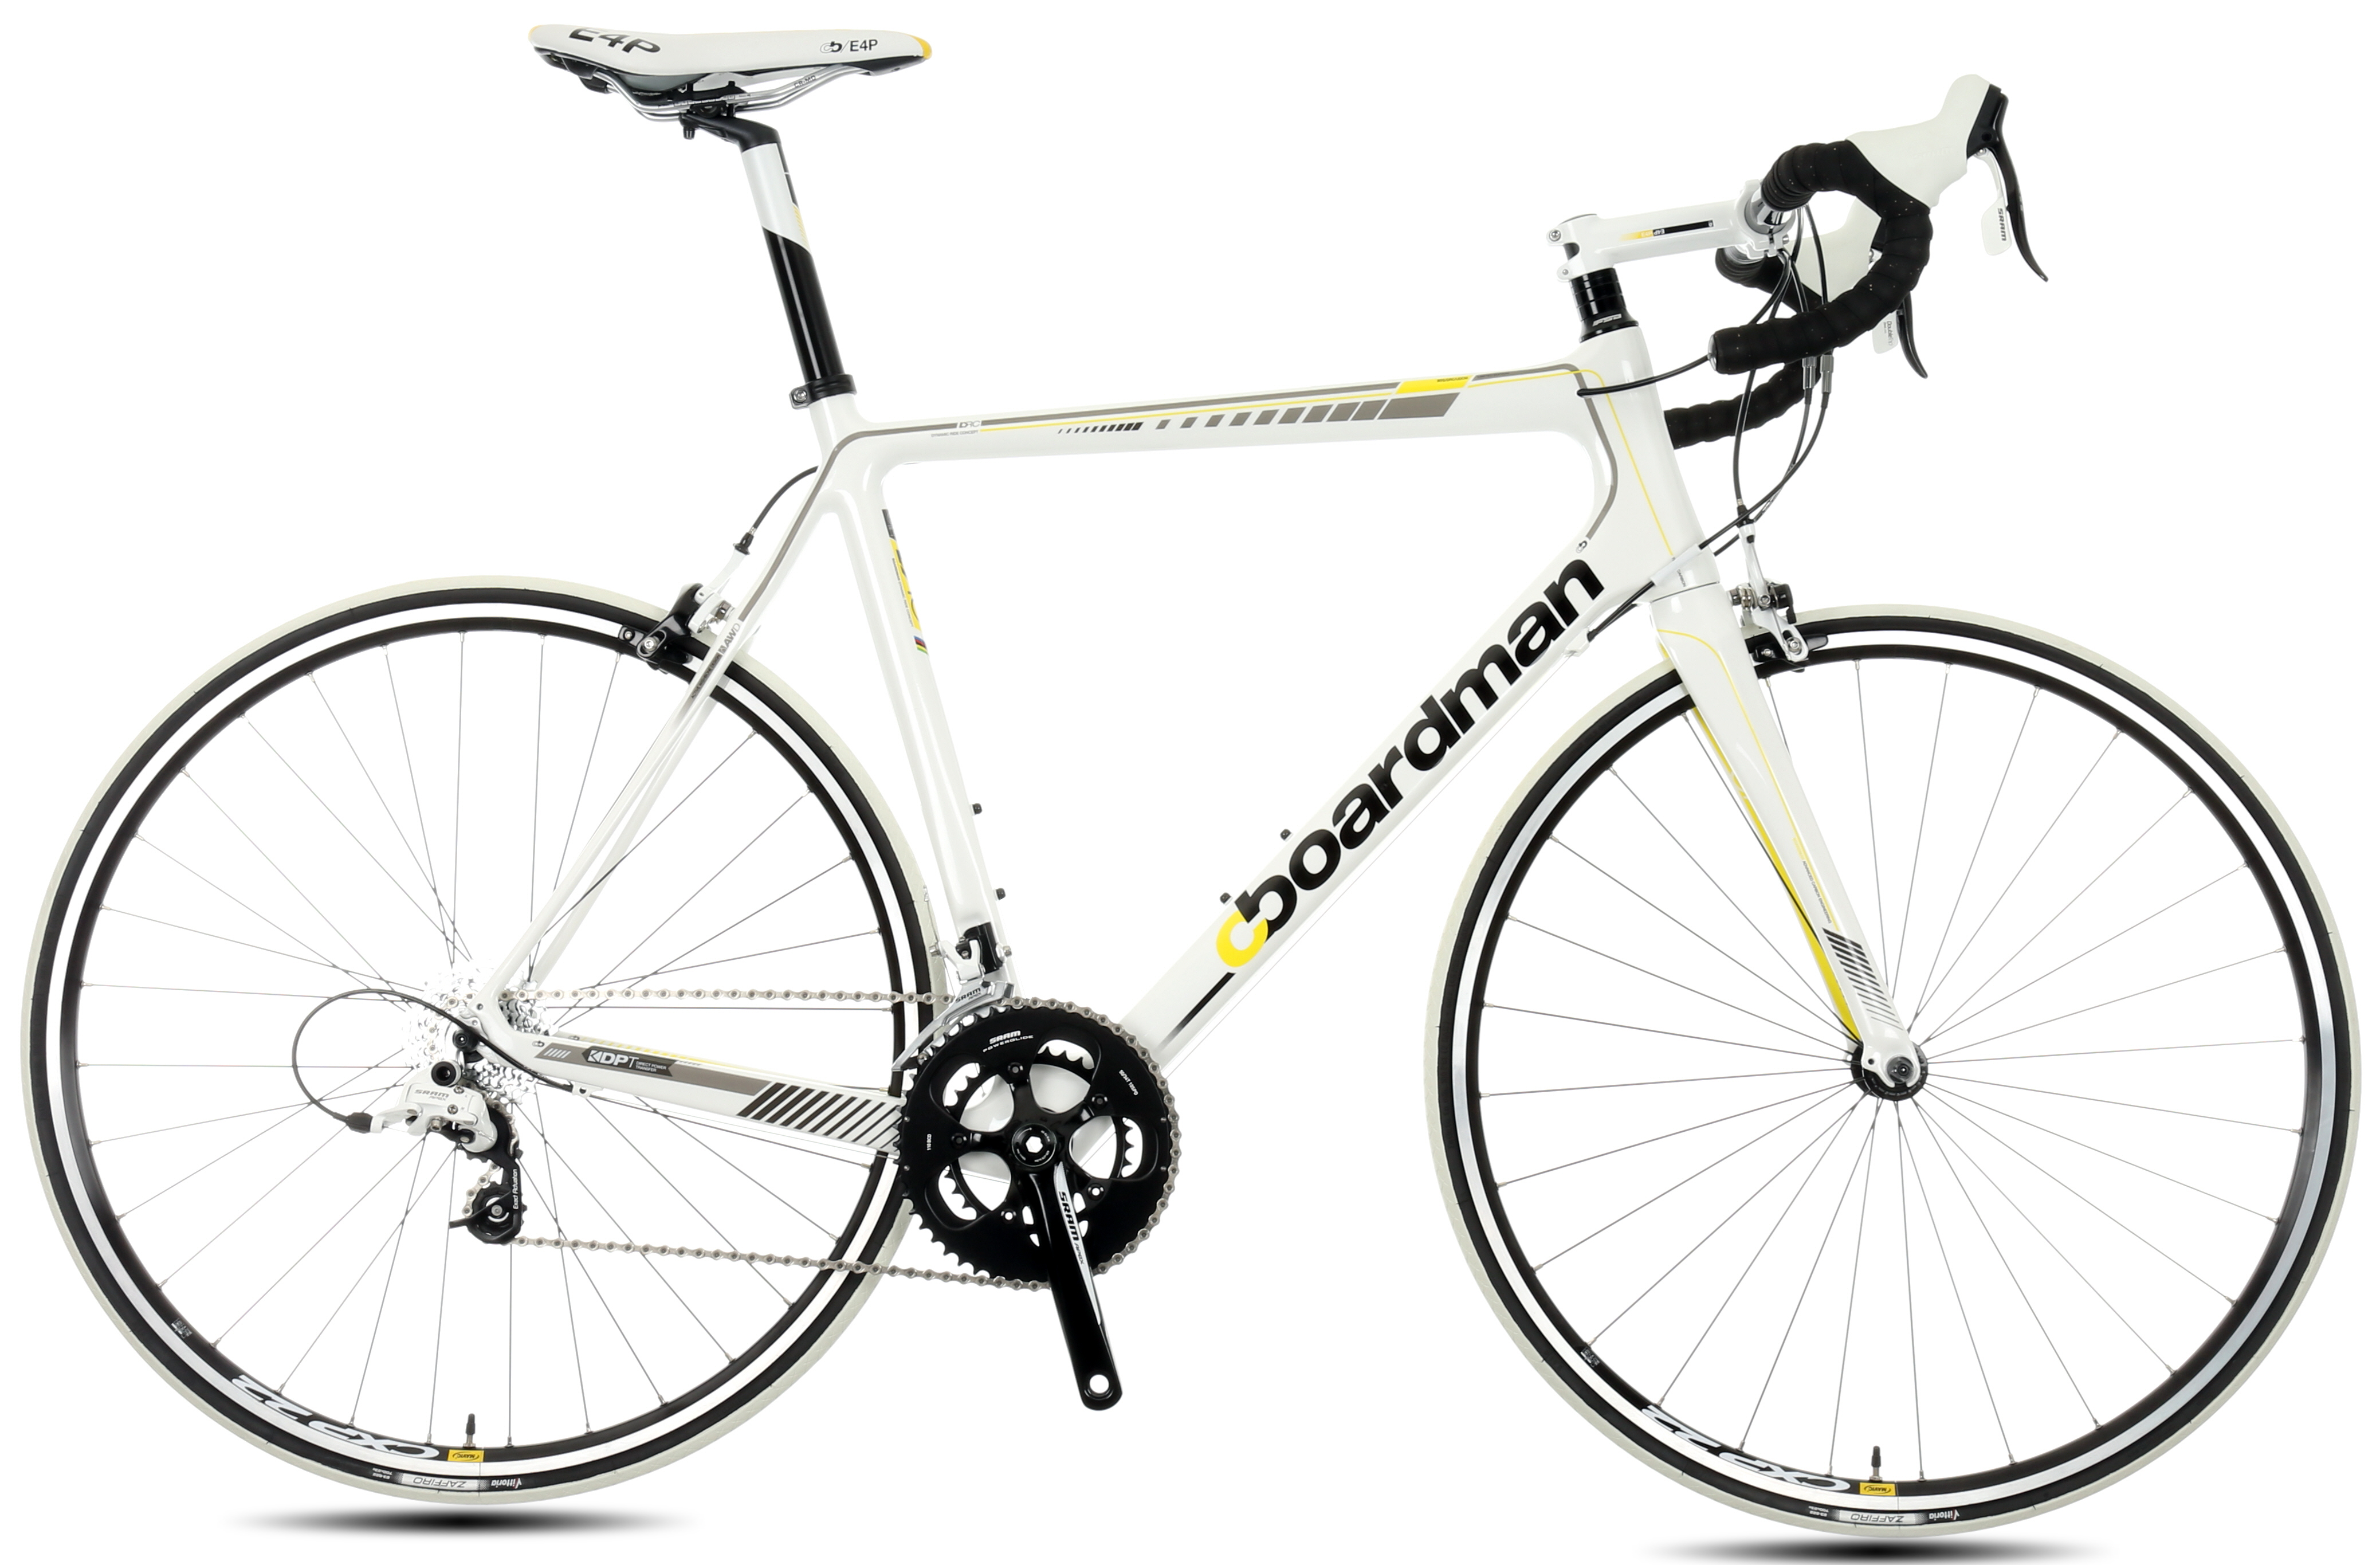 Boardman Launches Two New Limited Edition Road Bikes Cycling Weekly